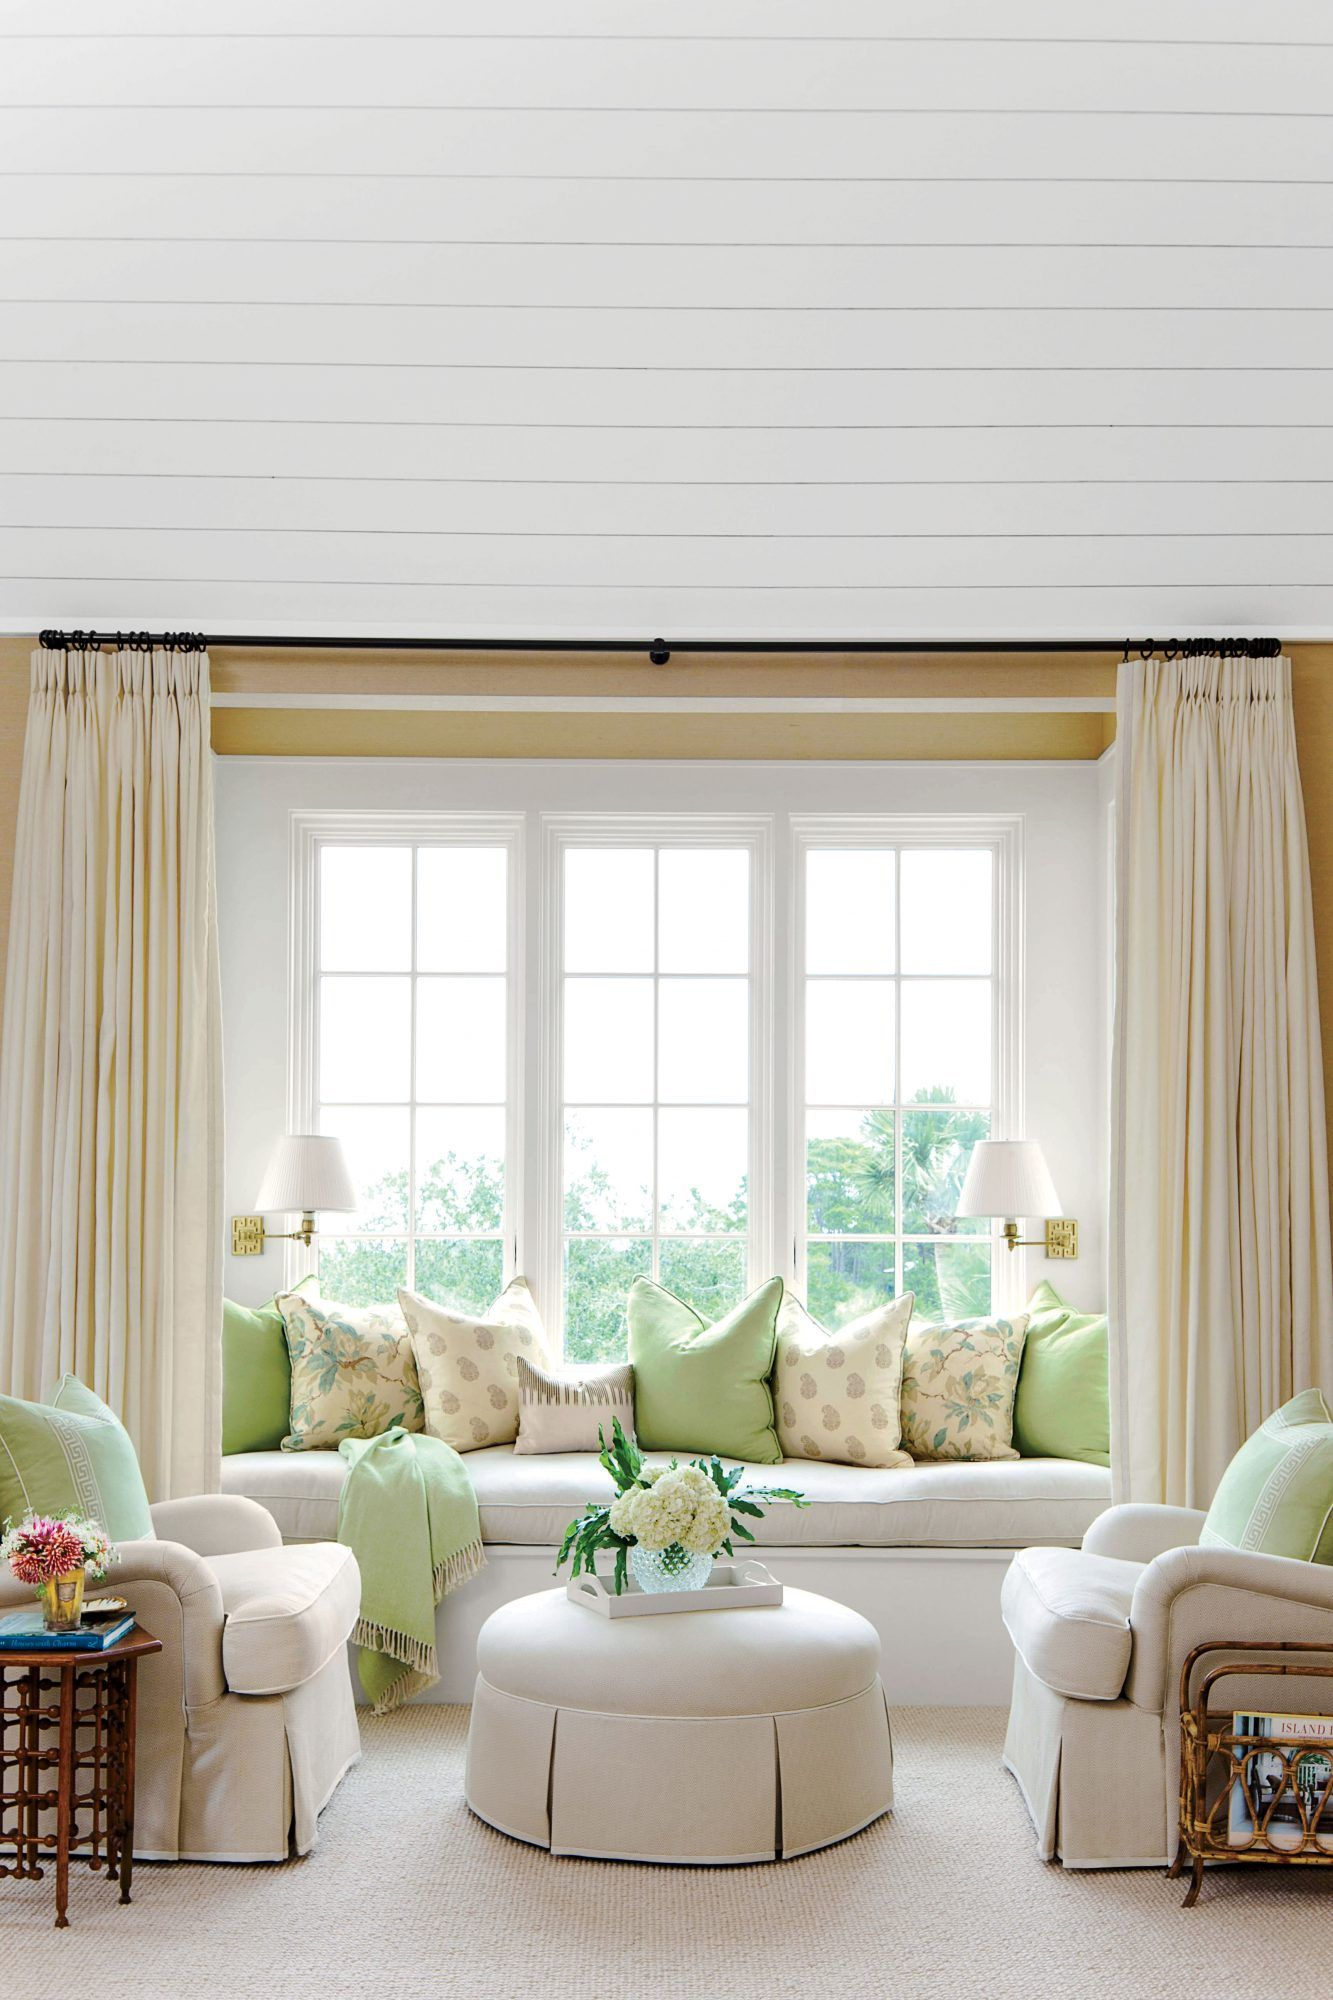 Stylish Bedroom Seating Bedroom Seating Area Curtains Living Room Bedroom Seating